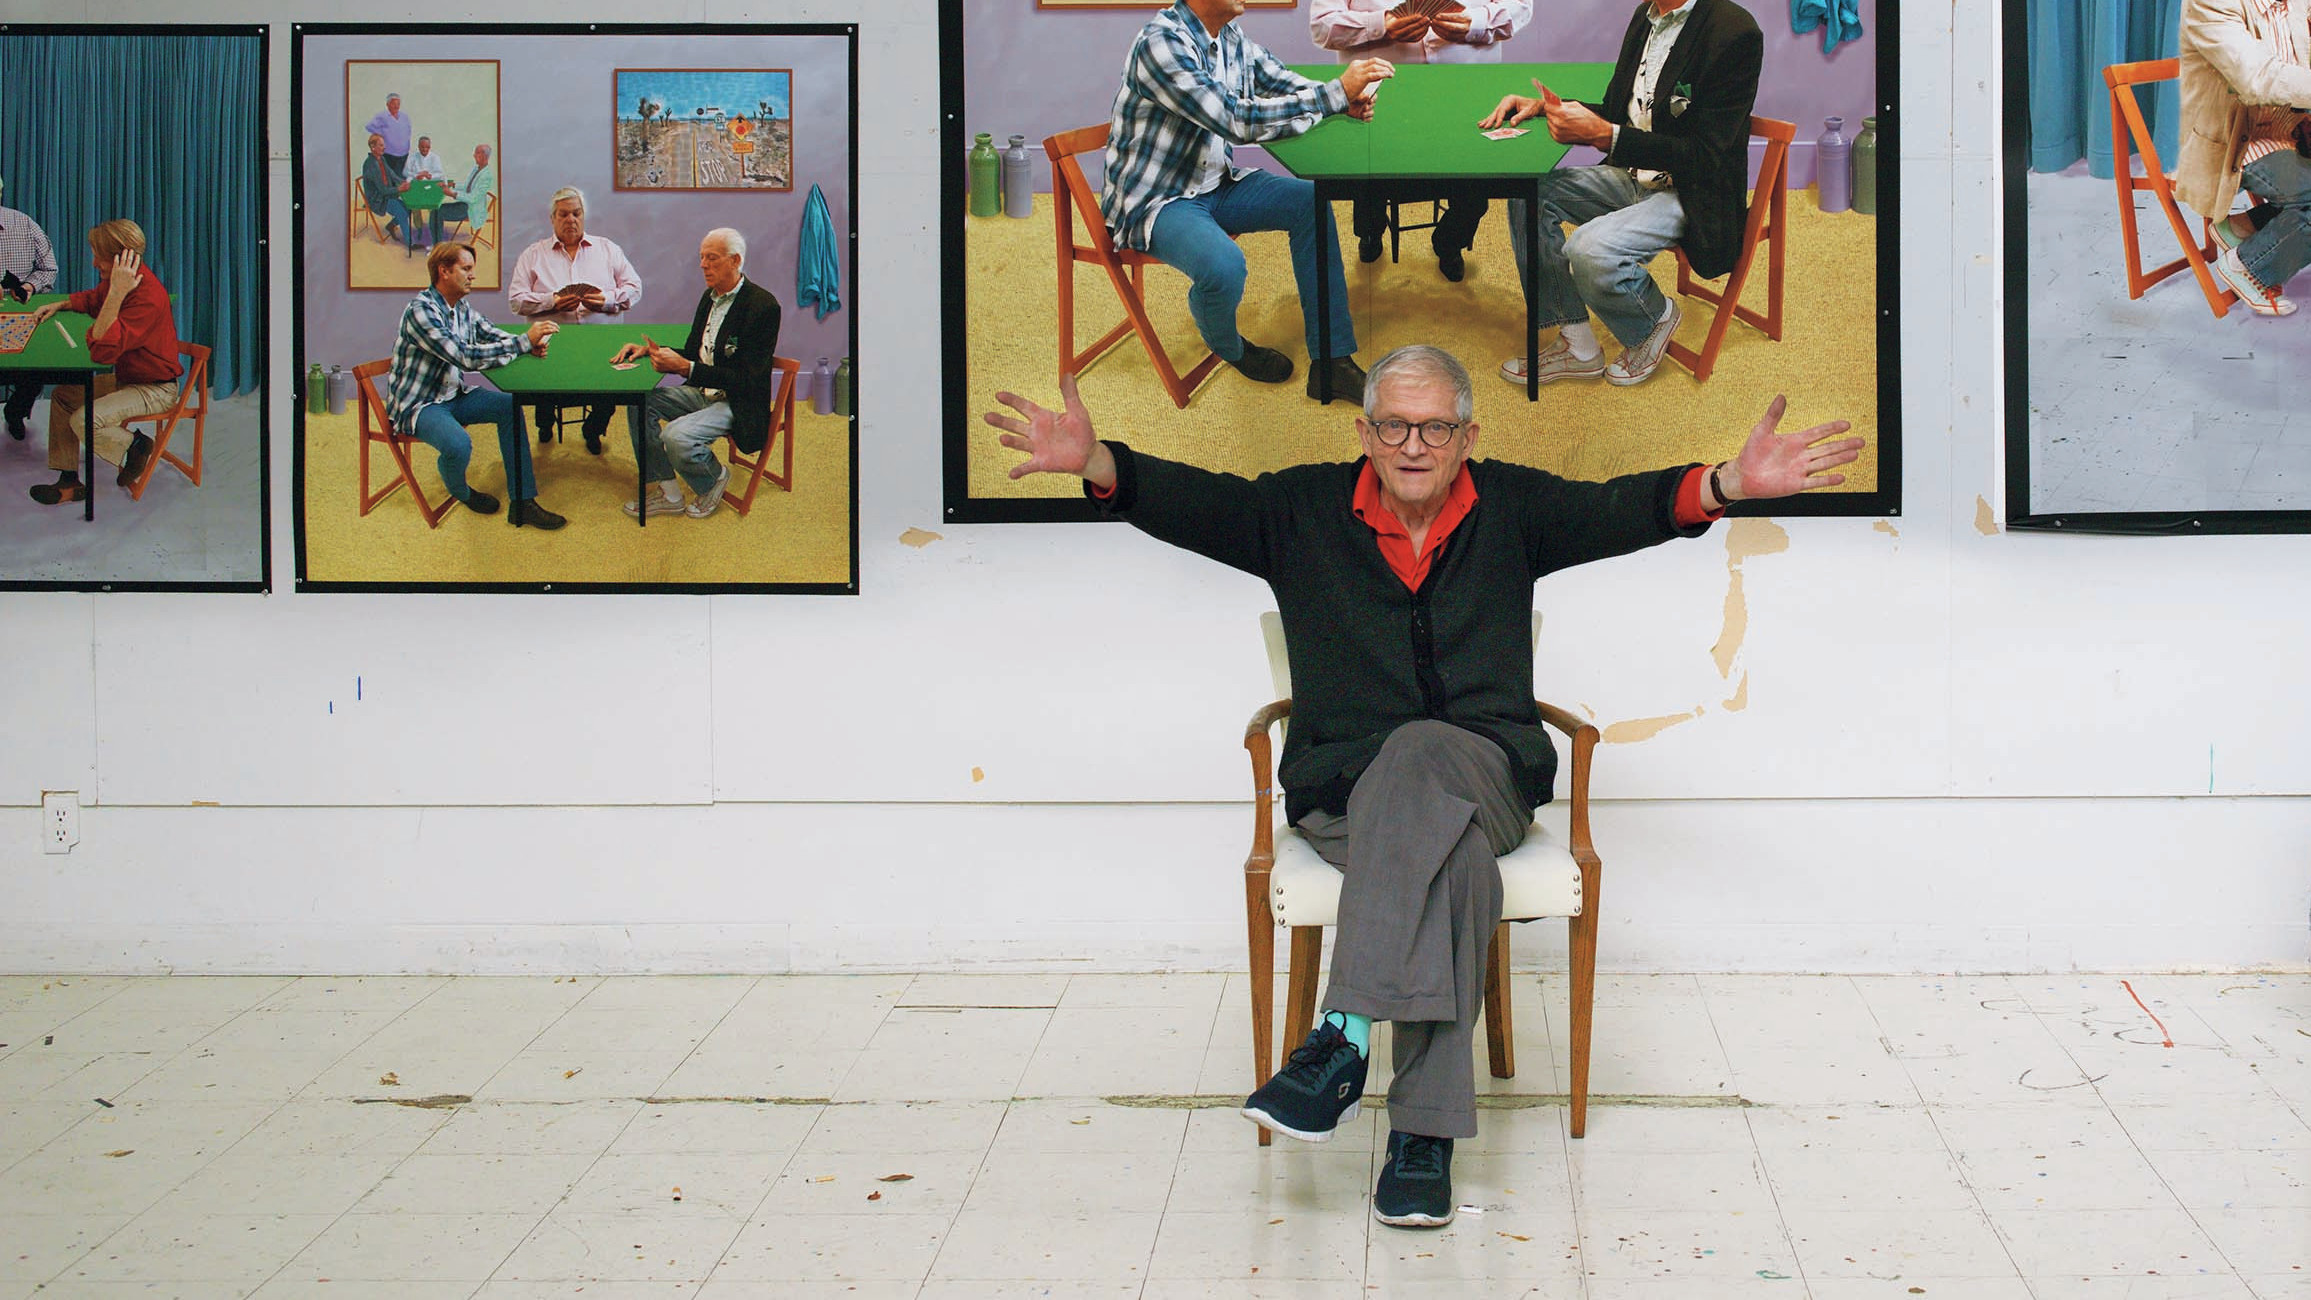 Artist David Hockney Says The Drive To Create Pictures Is